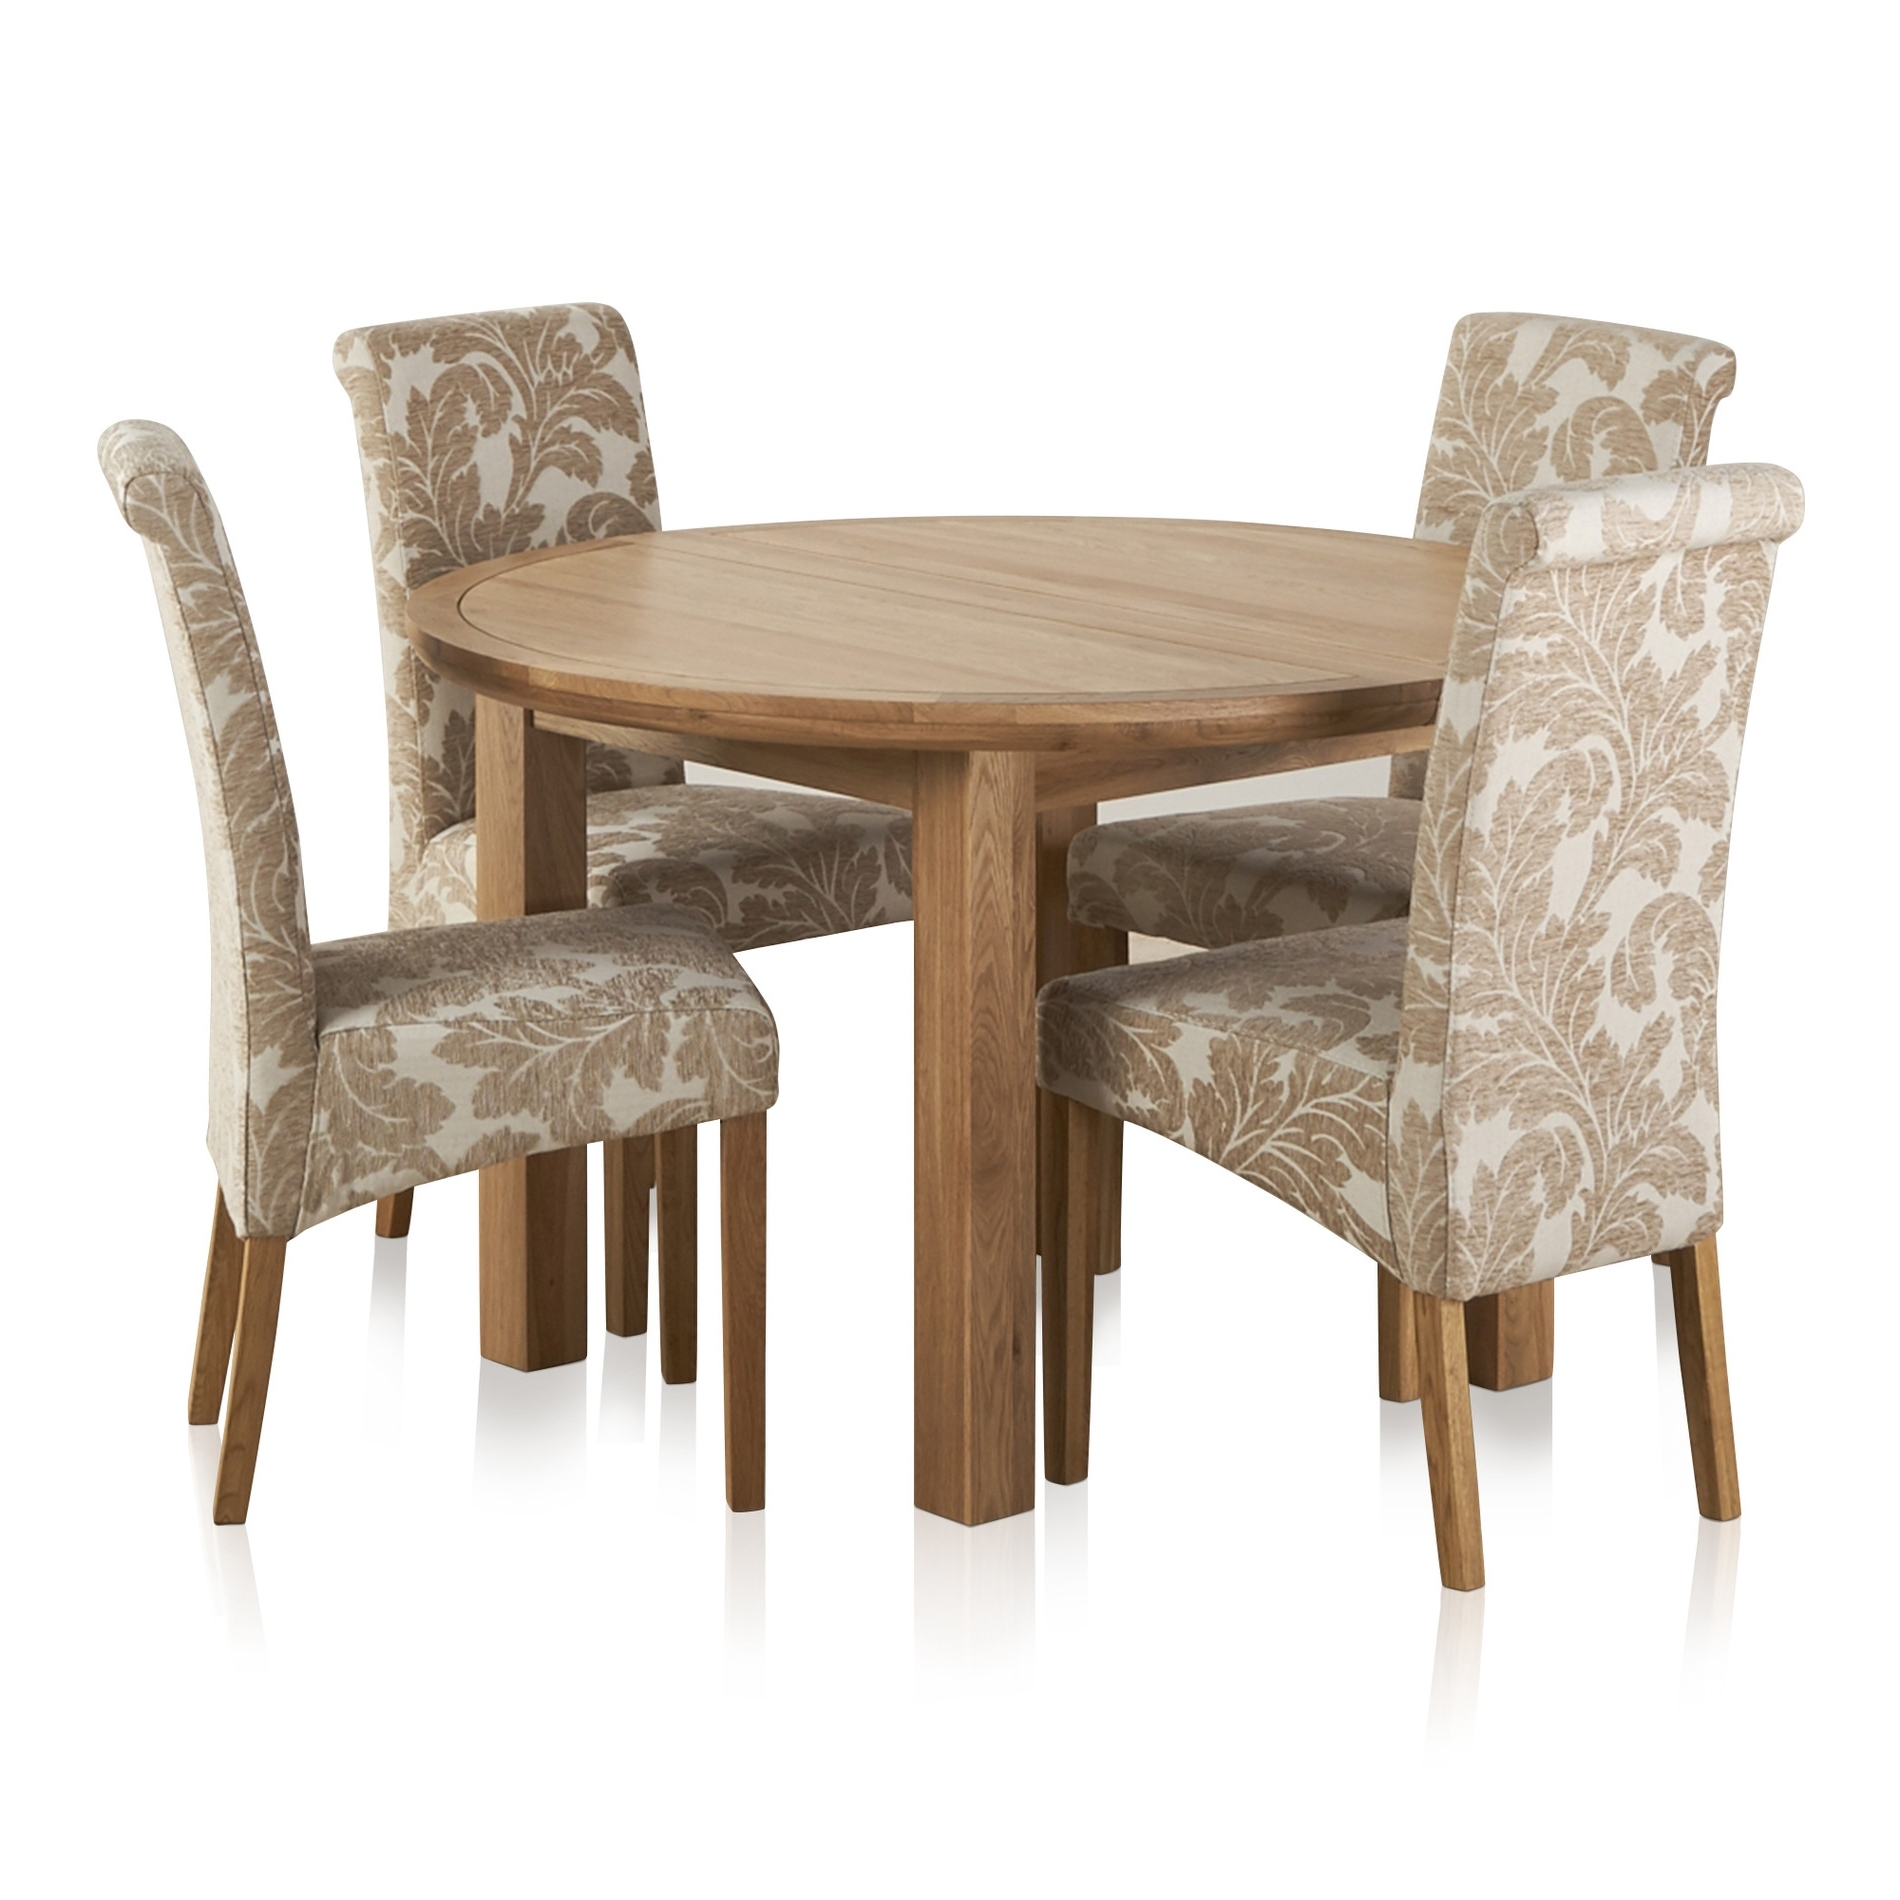 Round Oak Extendable Dining Tables And Chairs With Latest Knightsbridge Oak Dining Set – Round Extending Table + 4 Chairs (View 9 of 25)